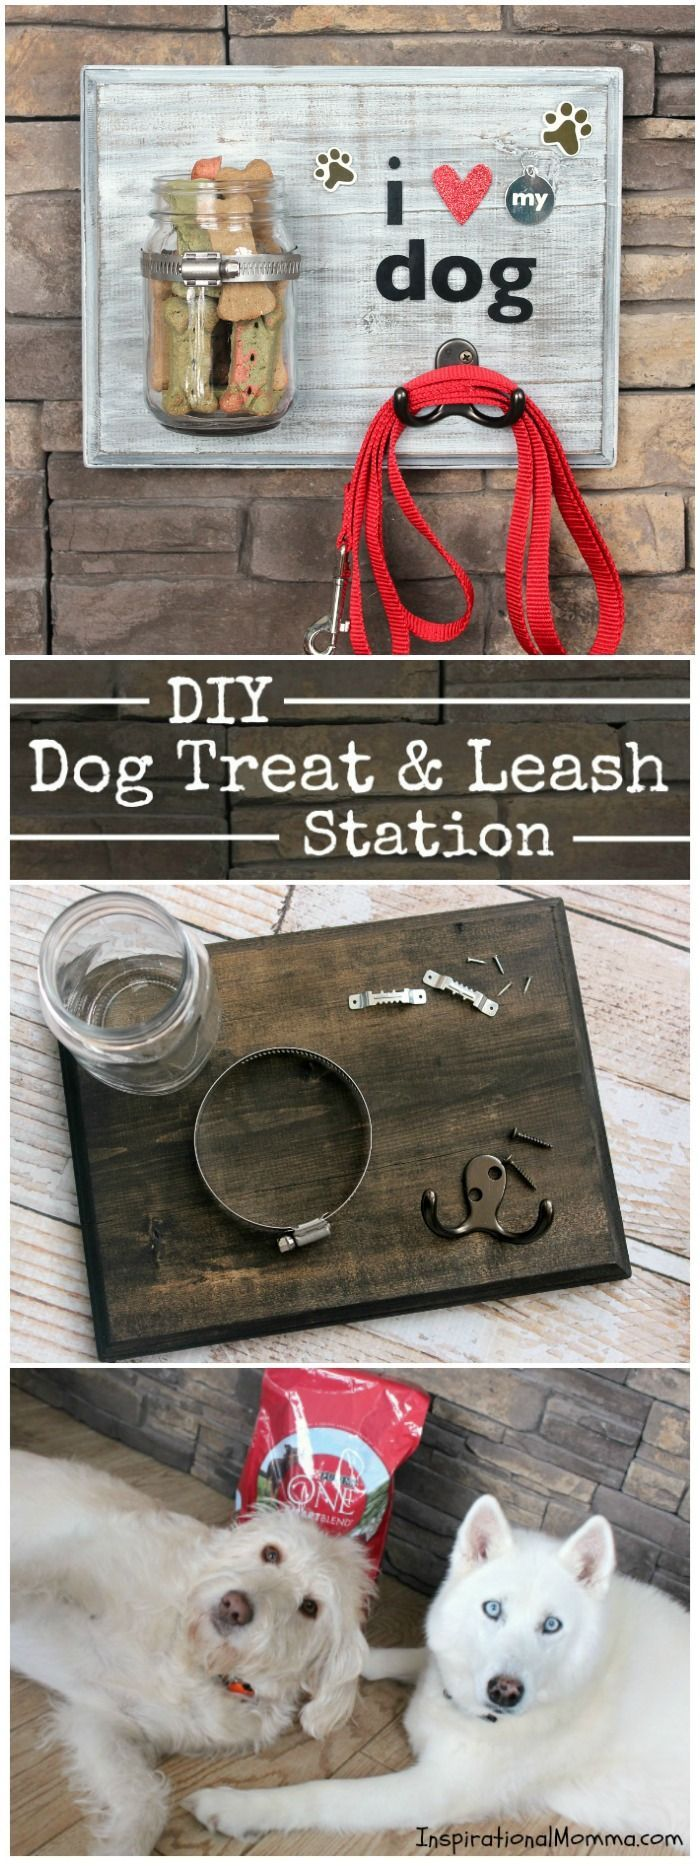 This DIY Dog Treat & Leash Station conveniently stores treats and a leash while adding a personal touch to a dog-lover's decor! @Purina @Target #FeedDogsPurina #Ad